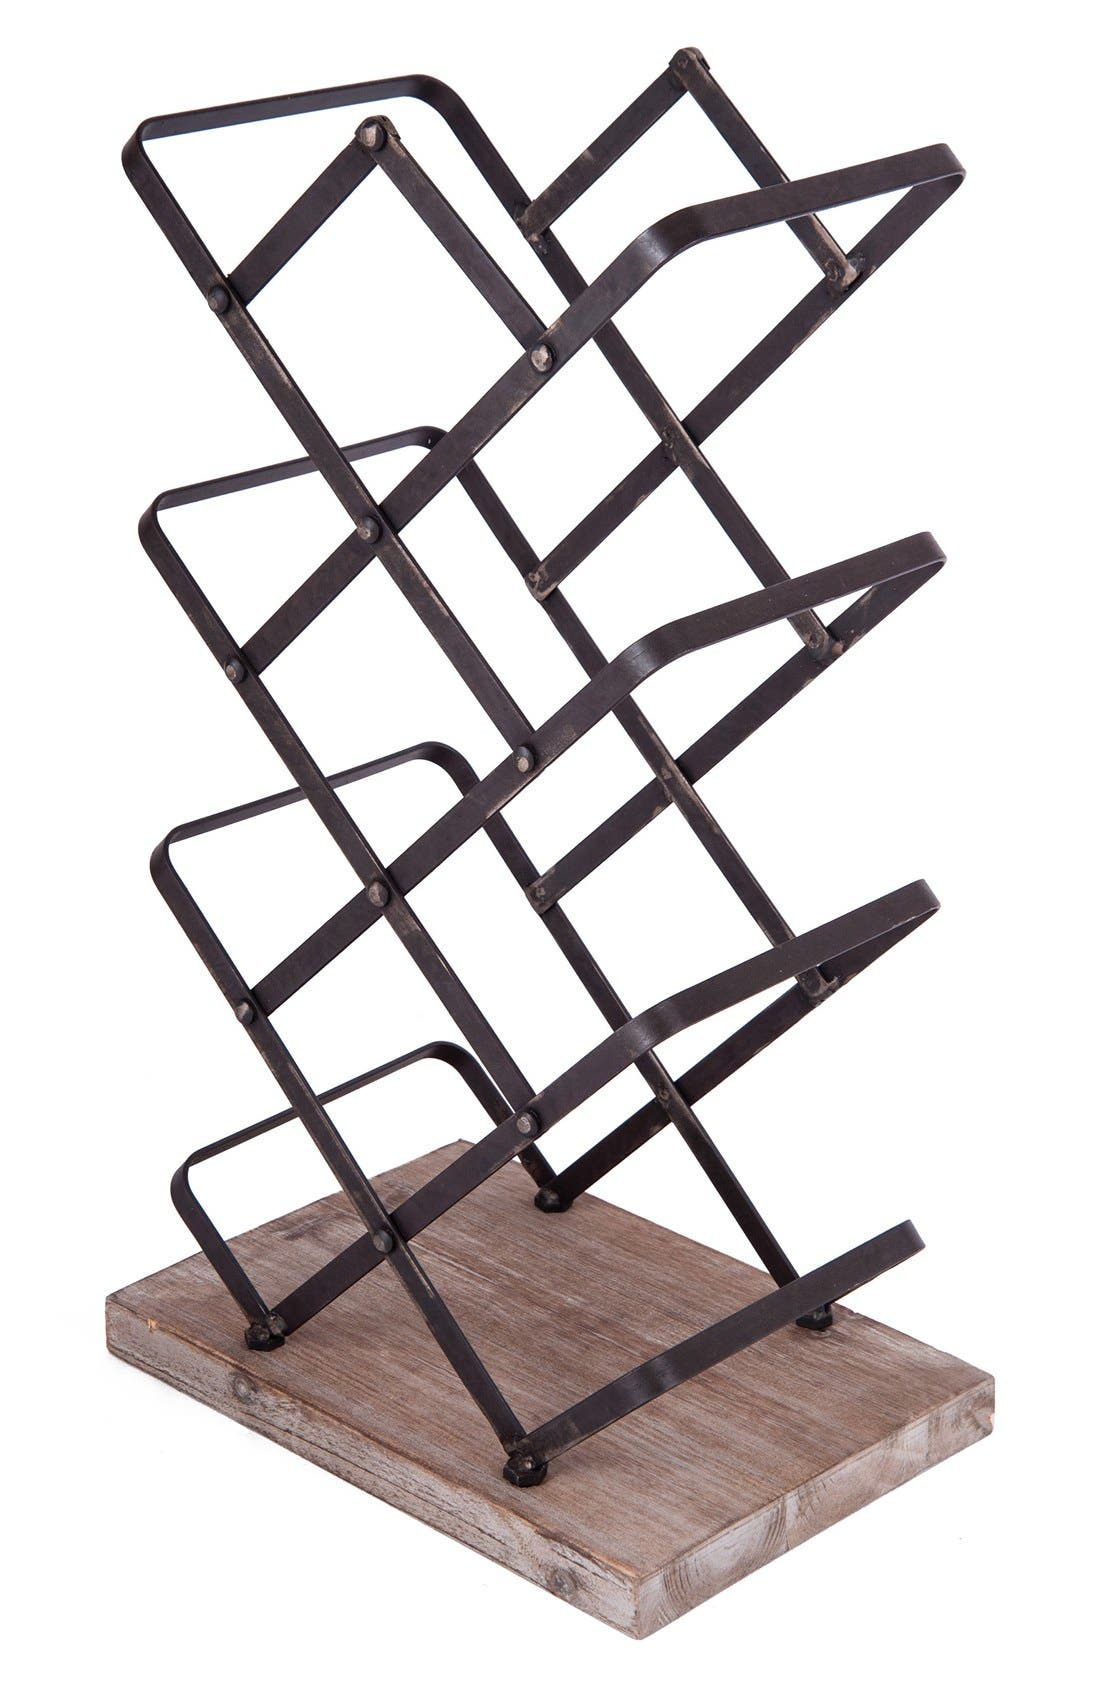 Alternate Image 1 Selected - Foreside Ashville Tabletop Wine Holder